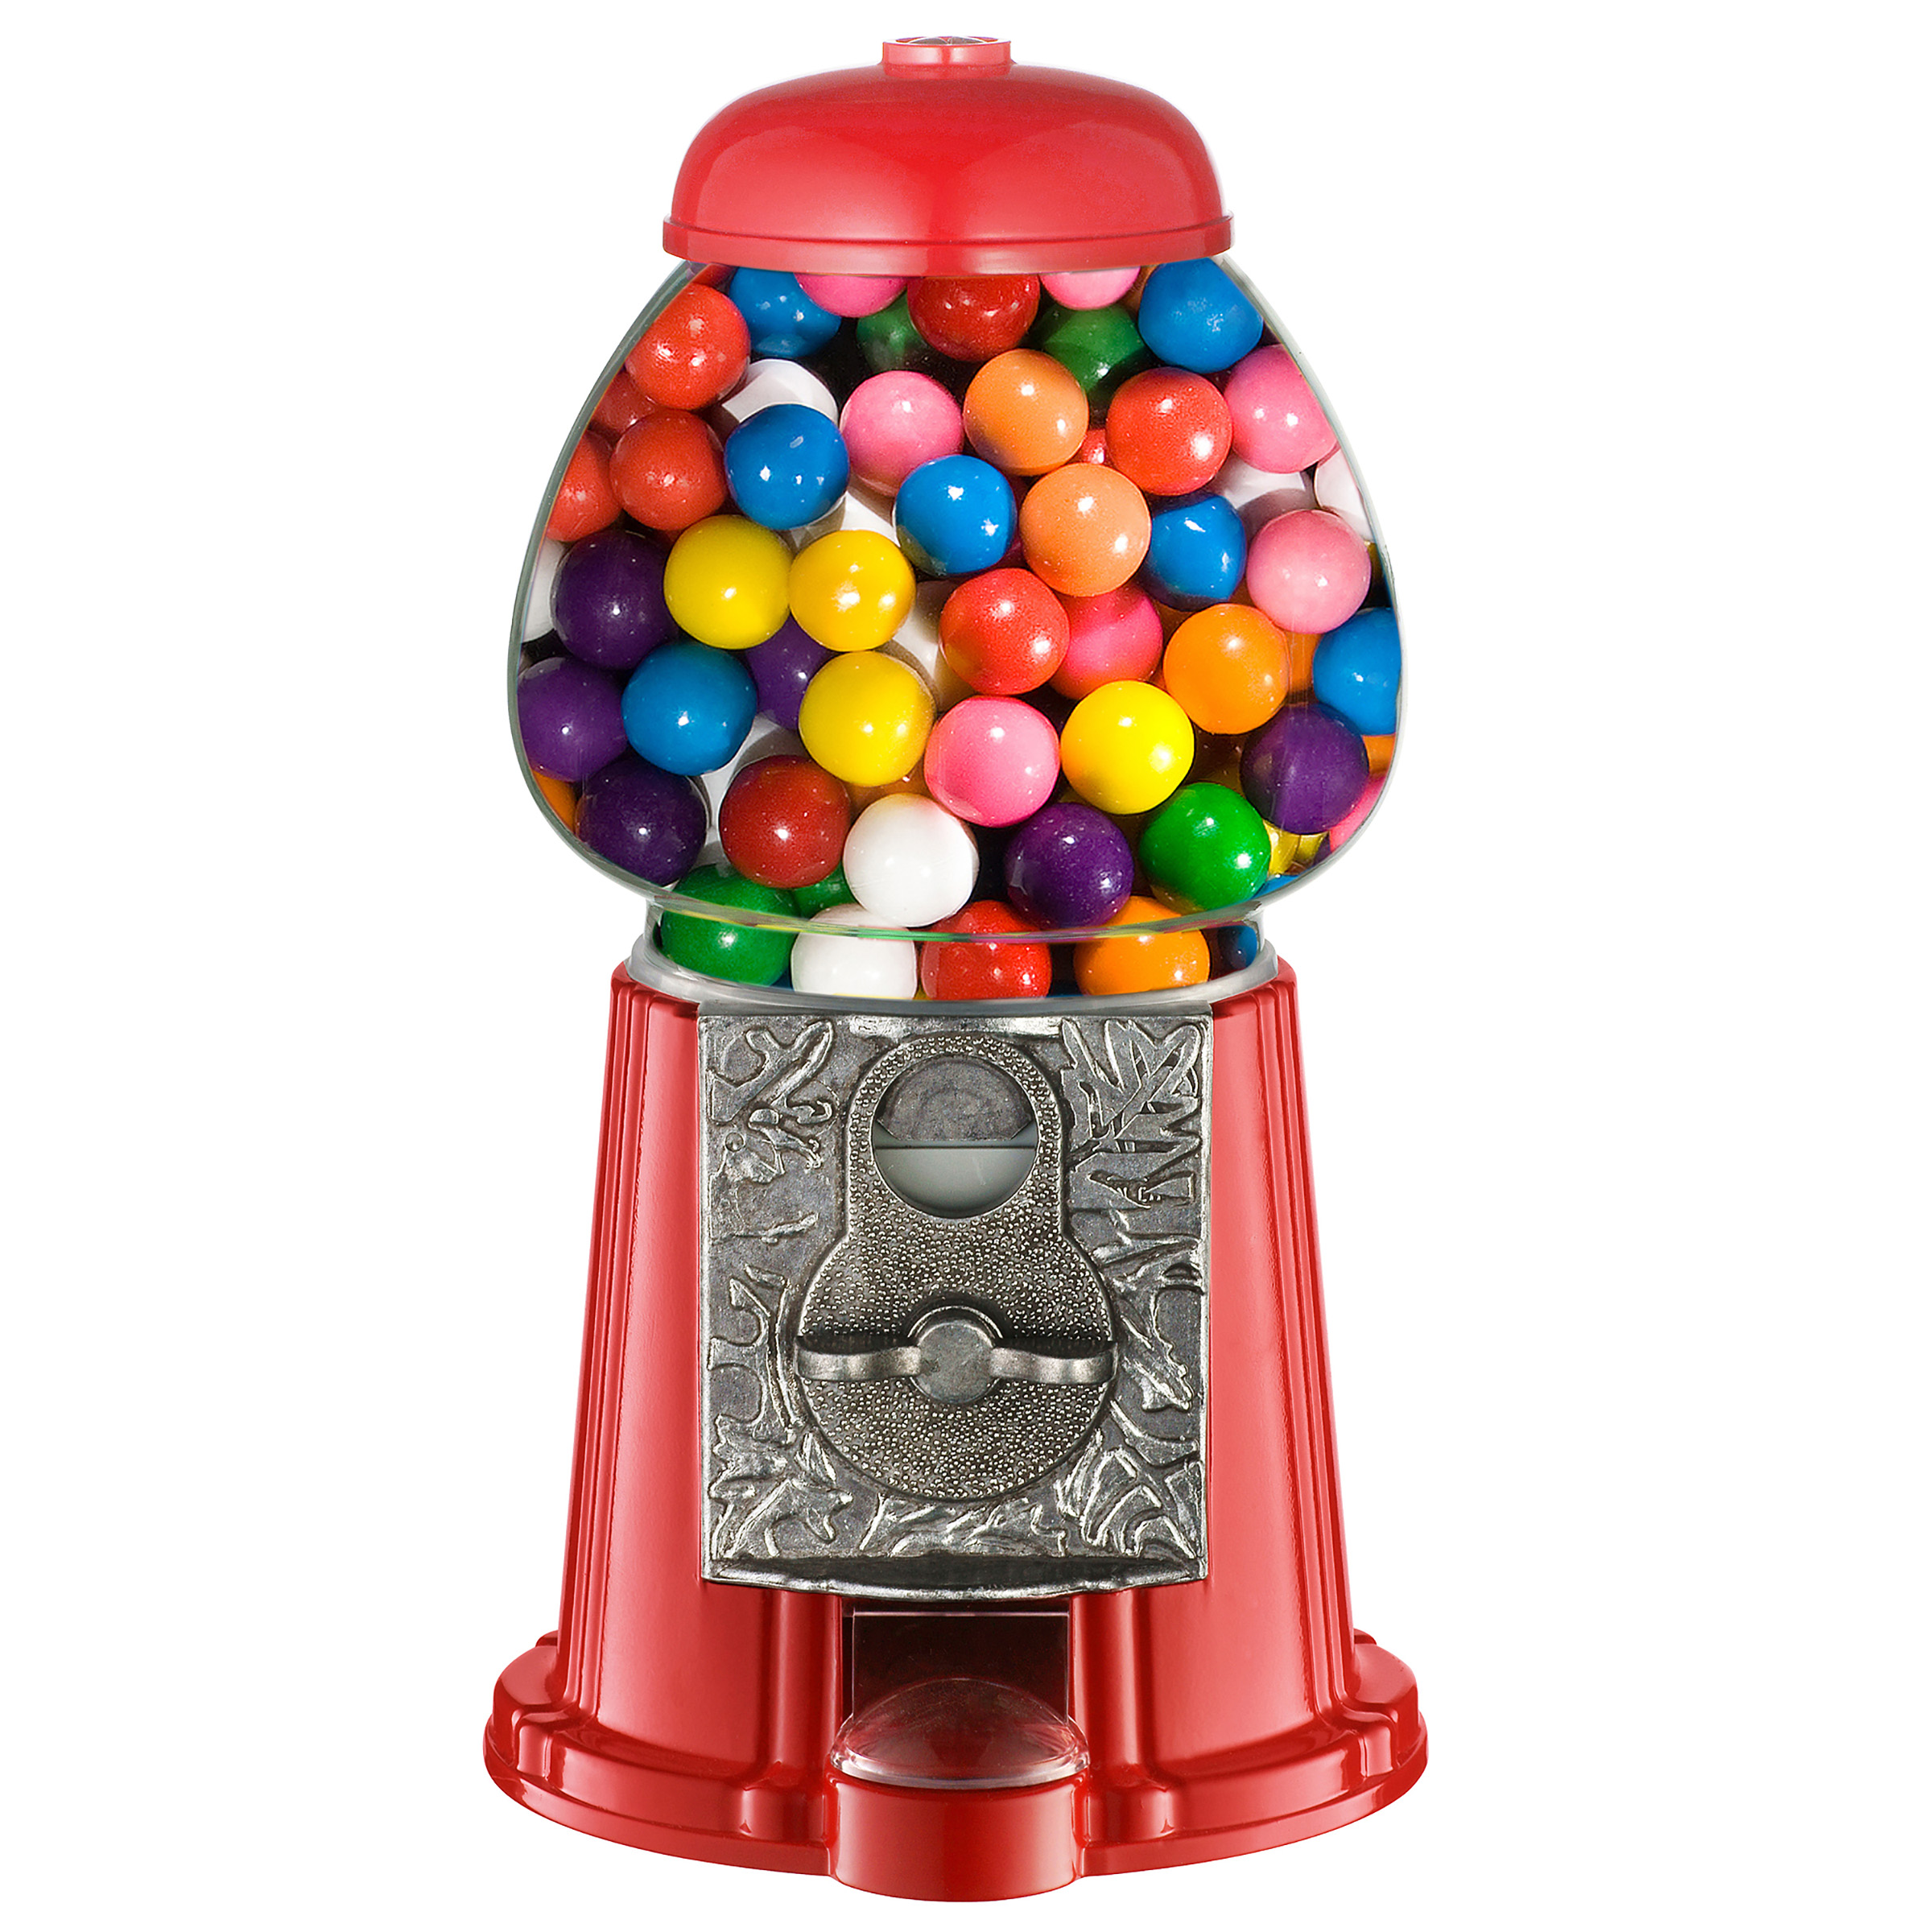 Great Northern 11″ Junior Vintage Old Fashioned Candy Gumball Machine Bank Toy – Everyone Loves Gumballs! (Walmart)